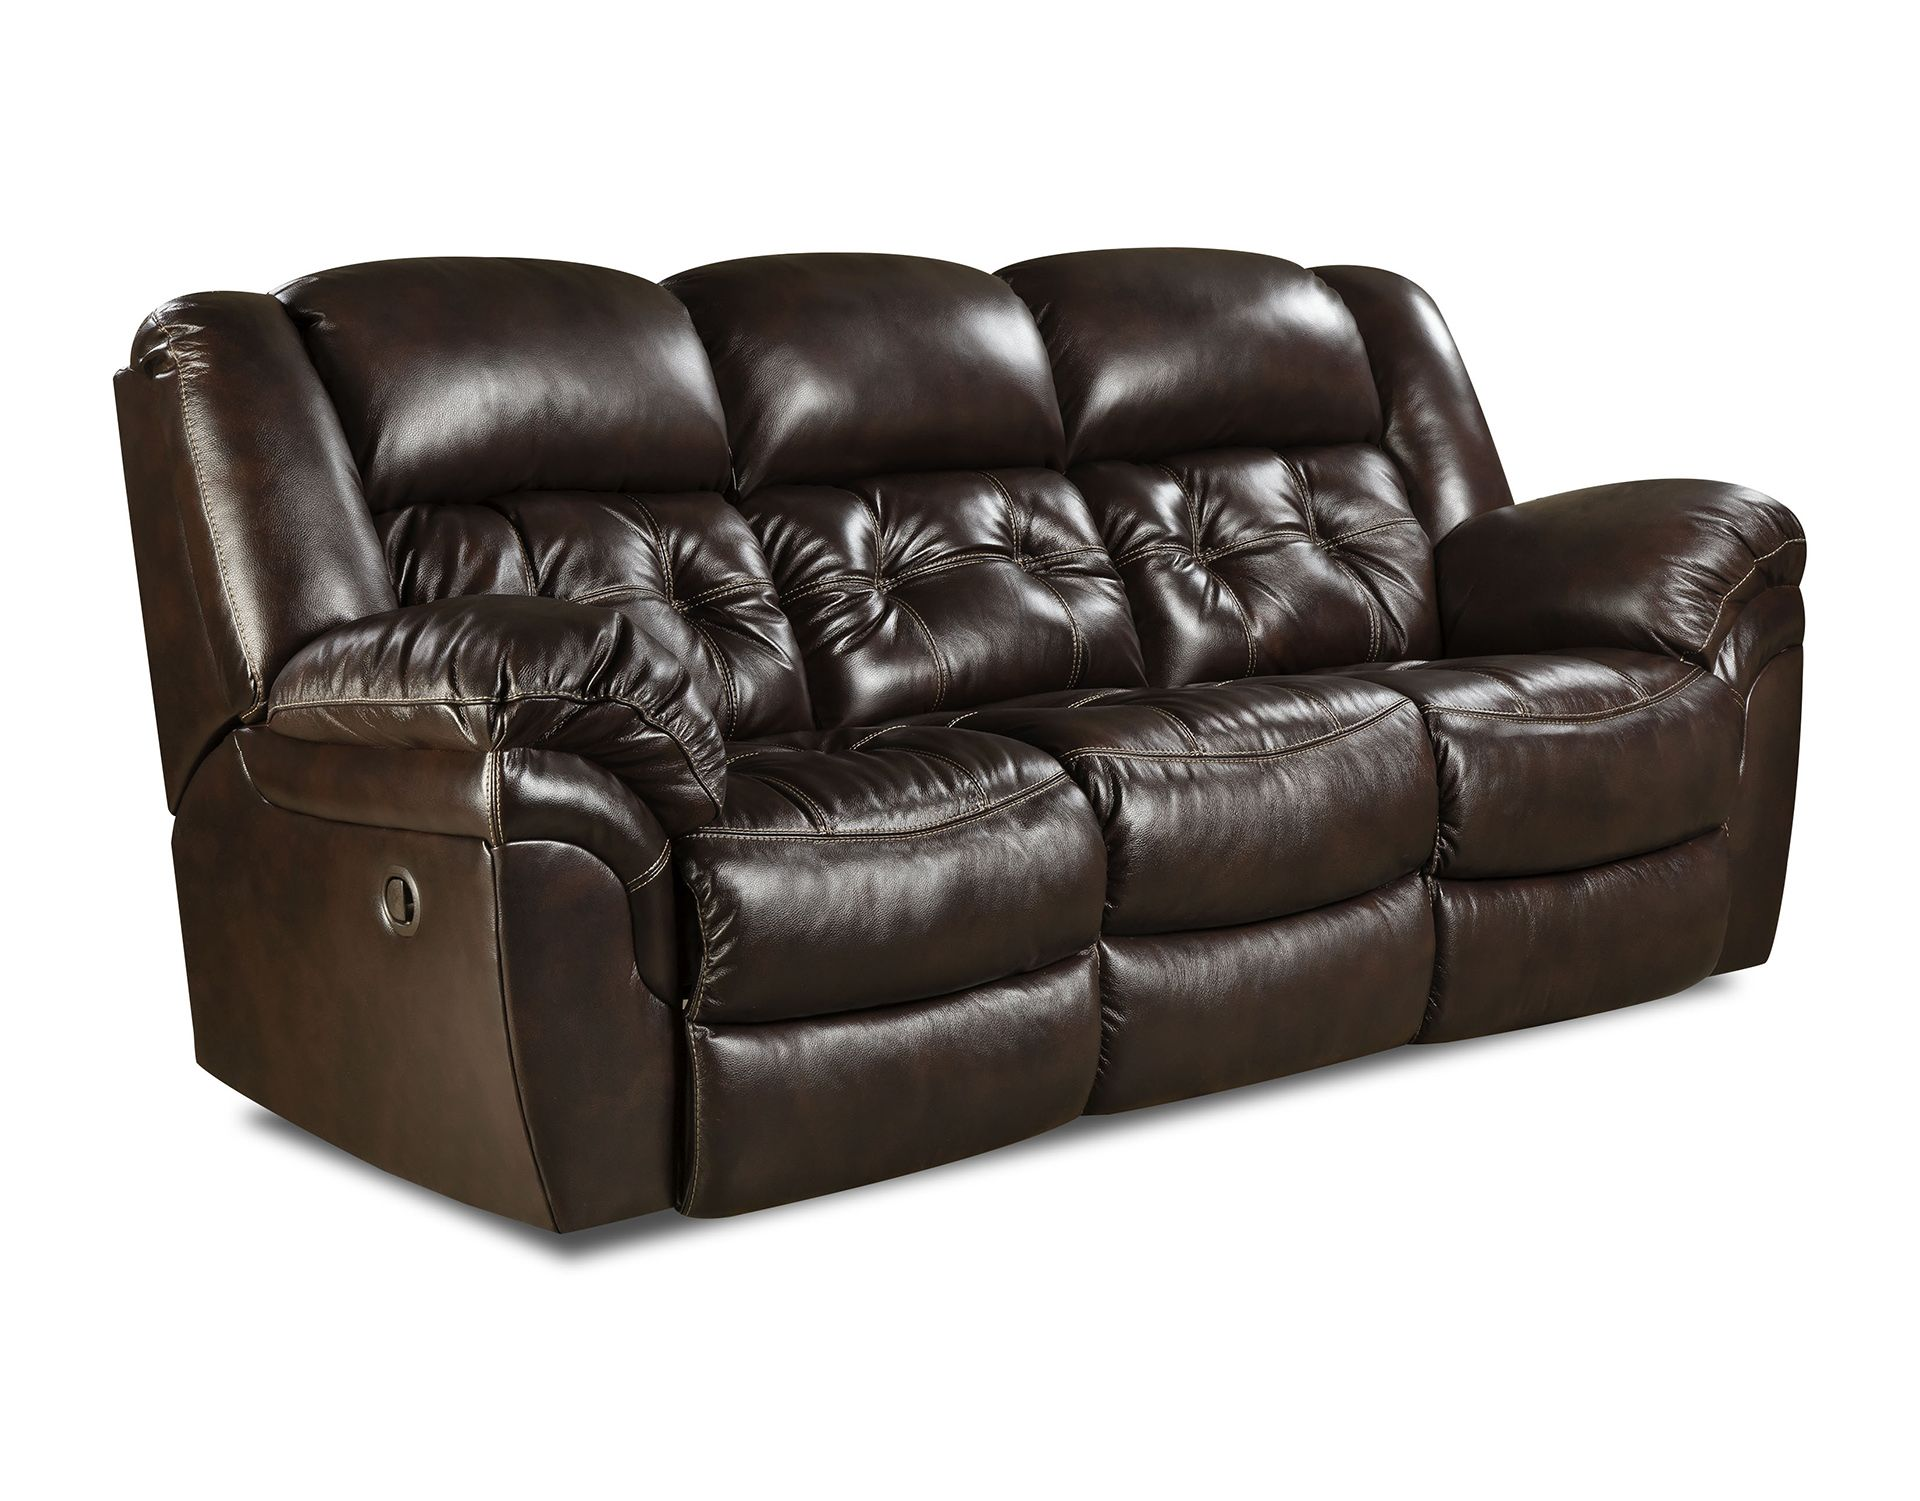 Double Reclining Sofa from HomeStretch